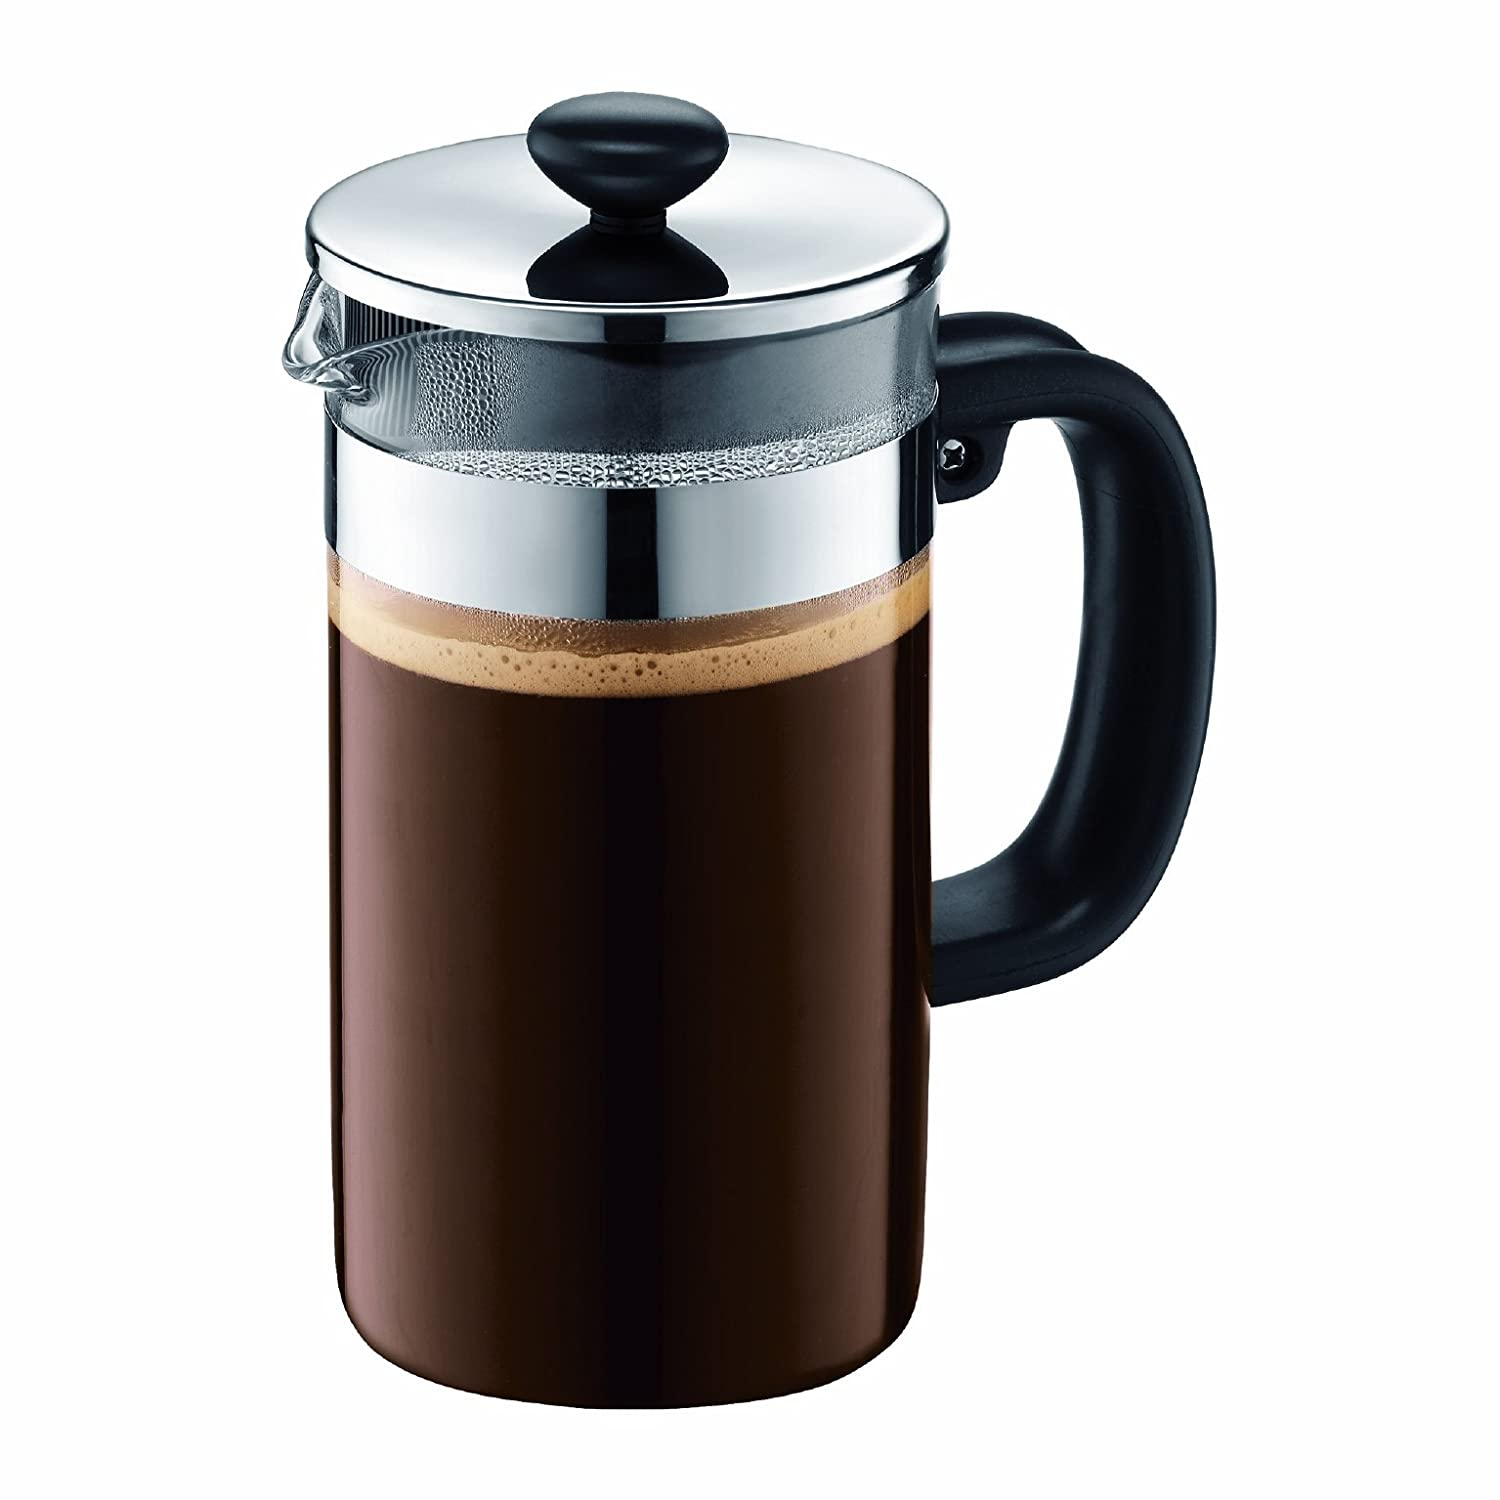 Bed bath beyond french press - Amazon Com Bodum Shin Bistro 8 Cup Coffee Press No Cork 34 Ounce French Presses Kitchen Dining